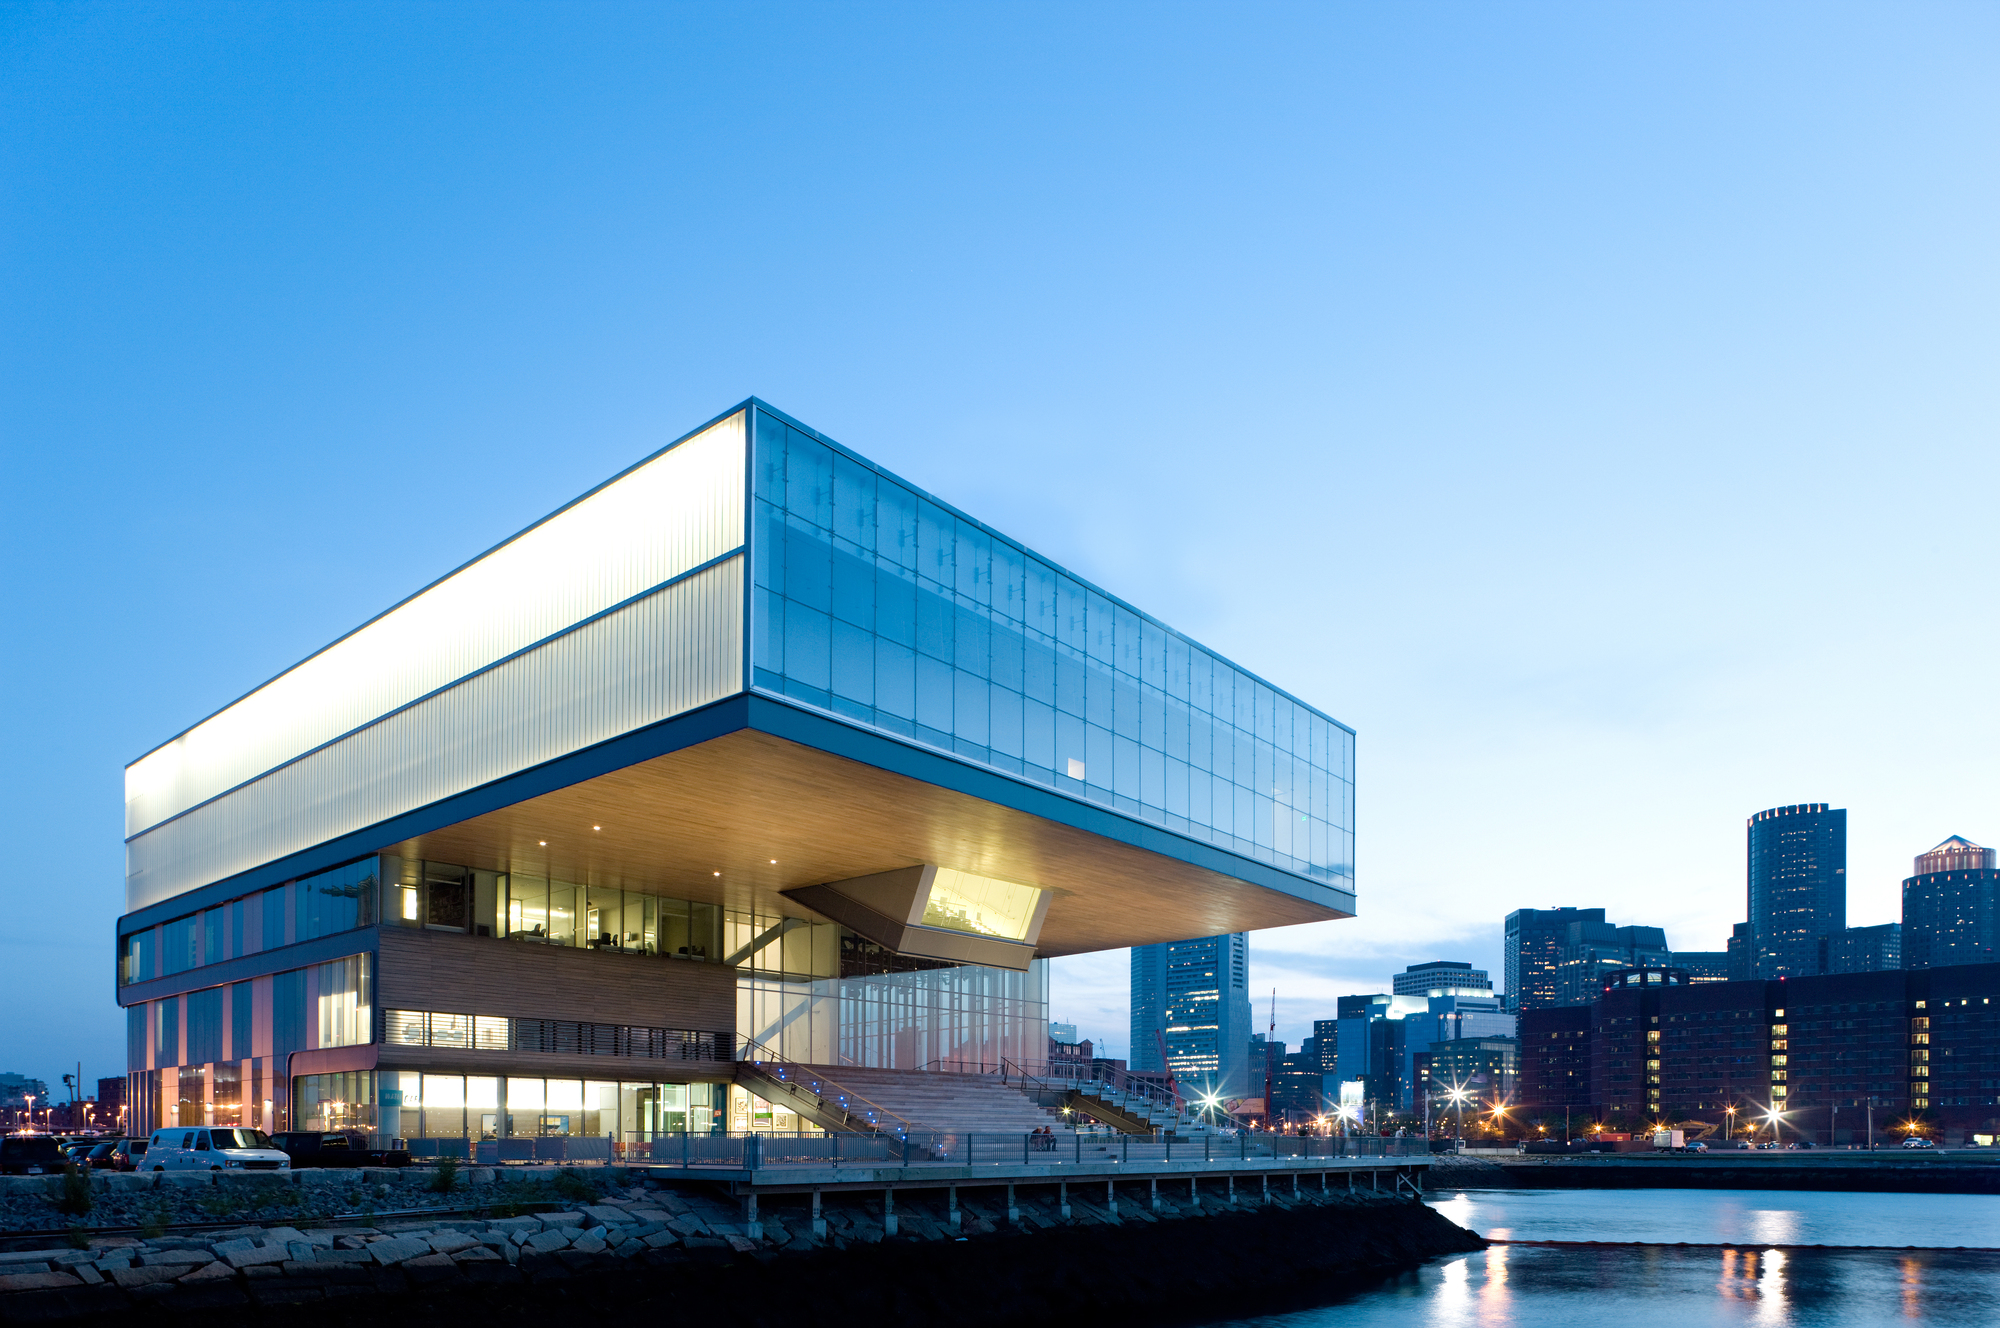 Institute Of Contemporary Art Diller Scofidio Renfro